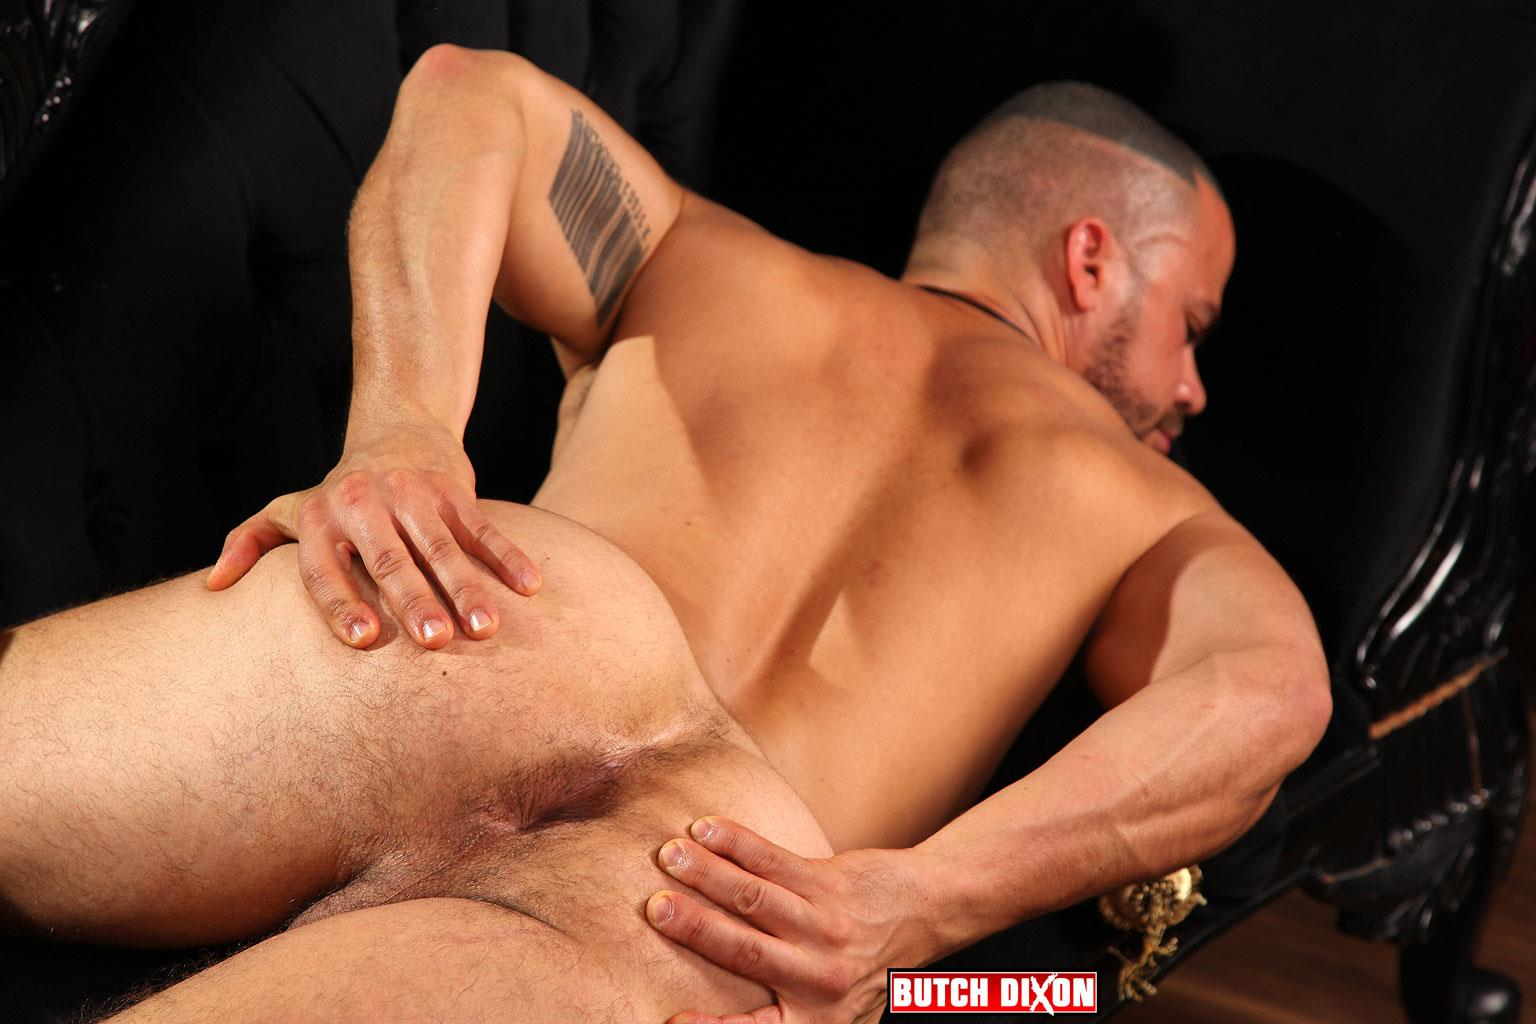 Butch-Dixon-Delta-Kobra-Muscle-Hunk-With-A-Big-Uncut-Cock-Jerking-Off-Amateur-Gay-Porn-15 Amateur Muscle Hunk Delta Kobra Jerks His Big Thick Uncut Cock